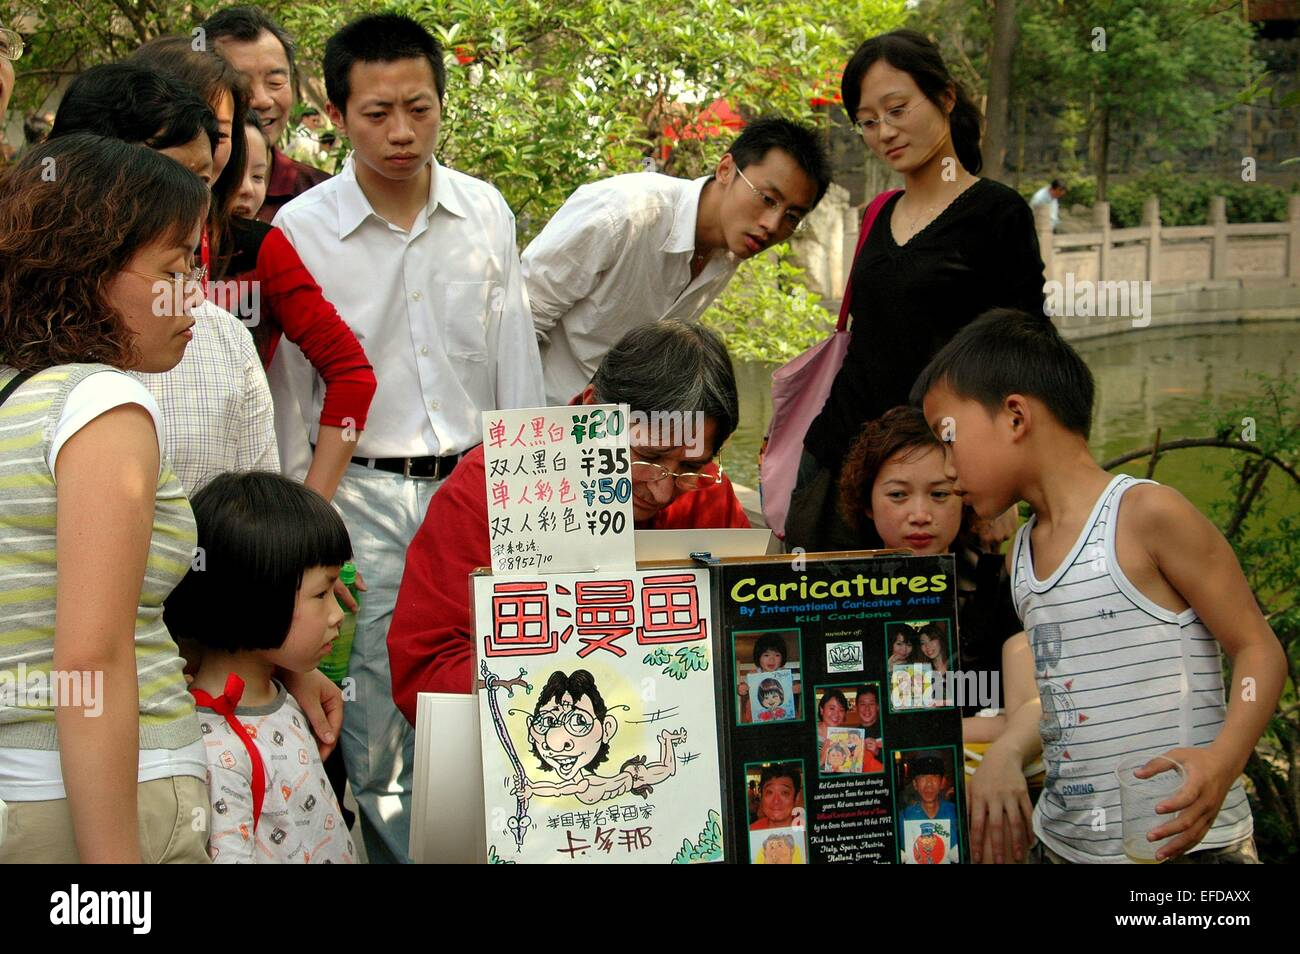 Chengdu, China:  A crowd gathers to watch an artist doing caricatures in the Jin Li Street park - Stock Image